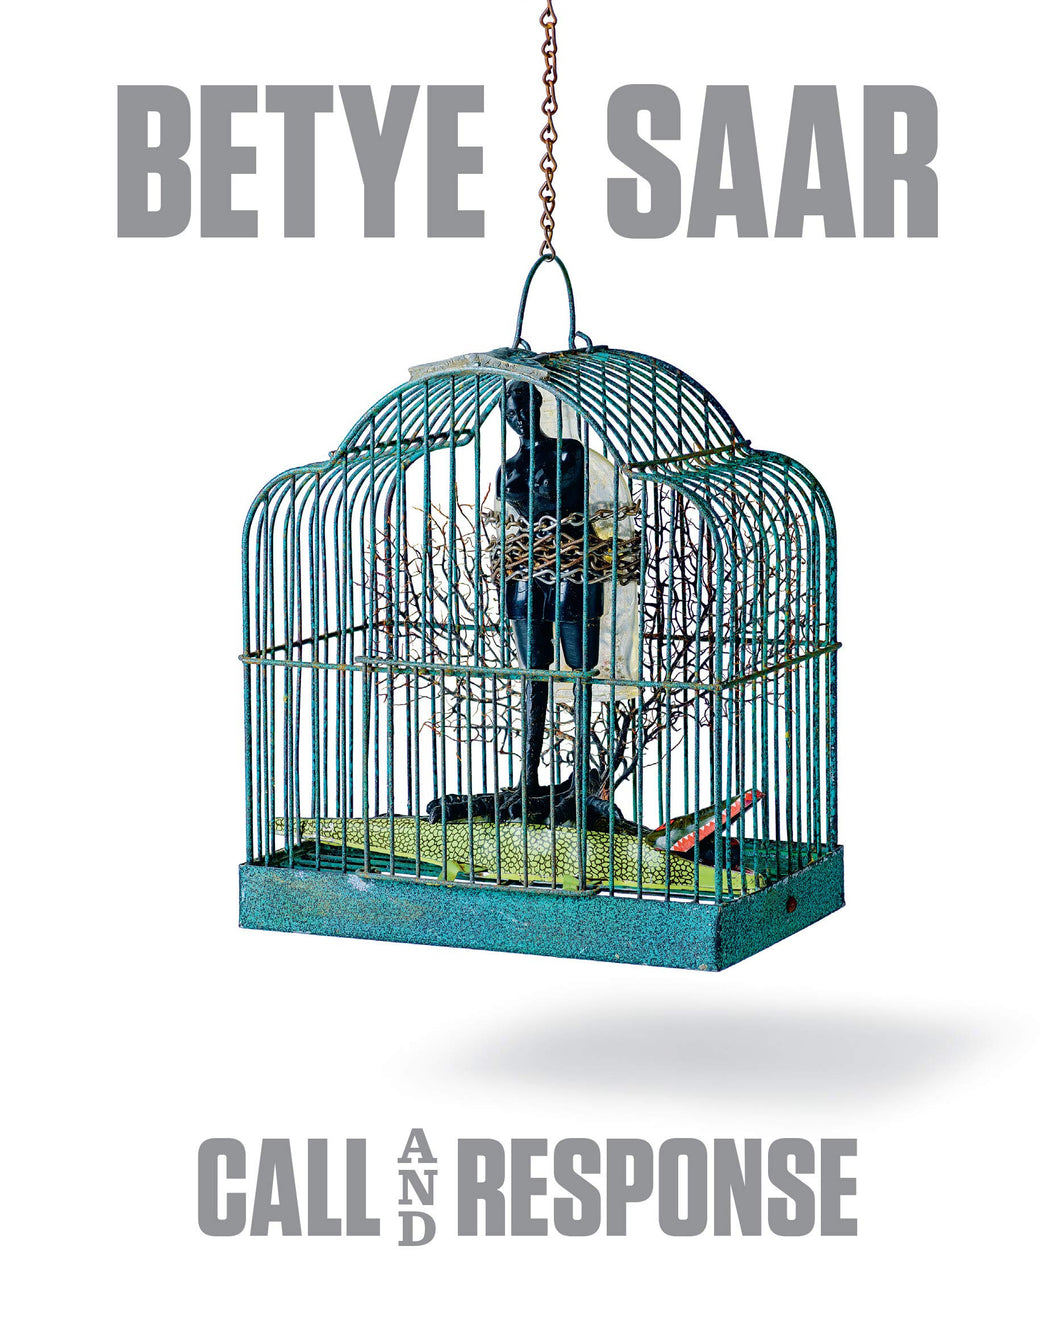 Betye Saar: Call and Response